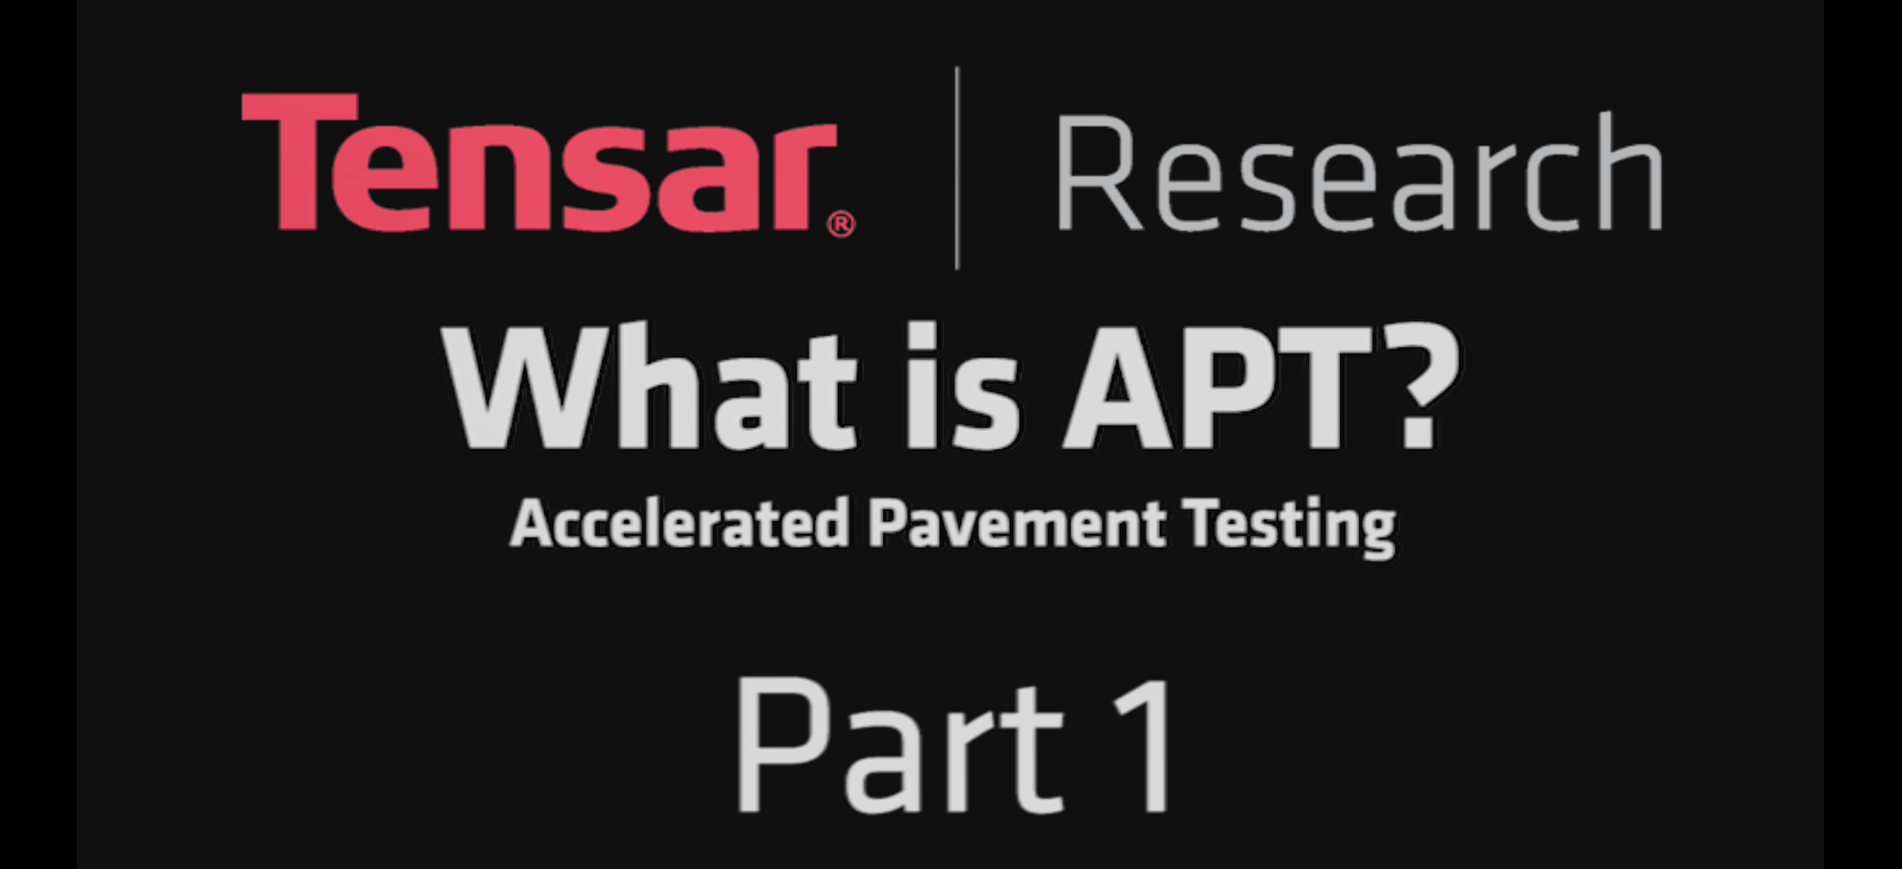 What is Accelerated Pavement Testing (APT)?